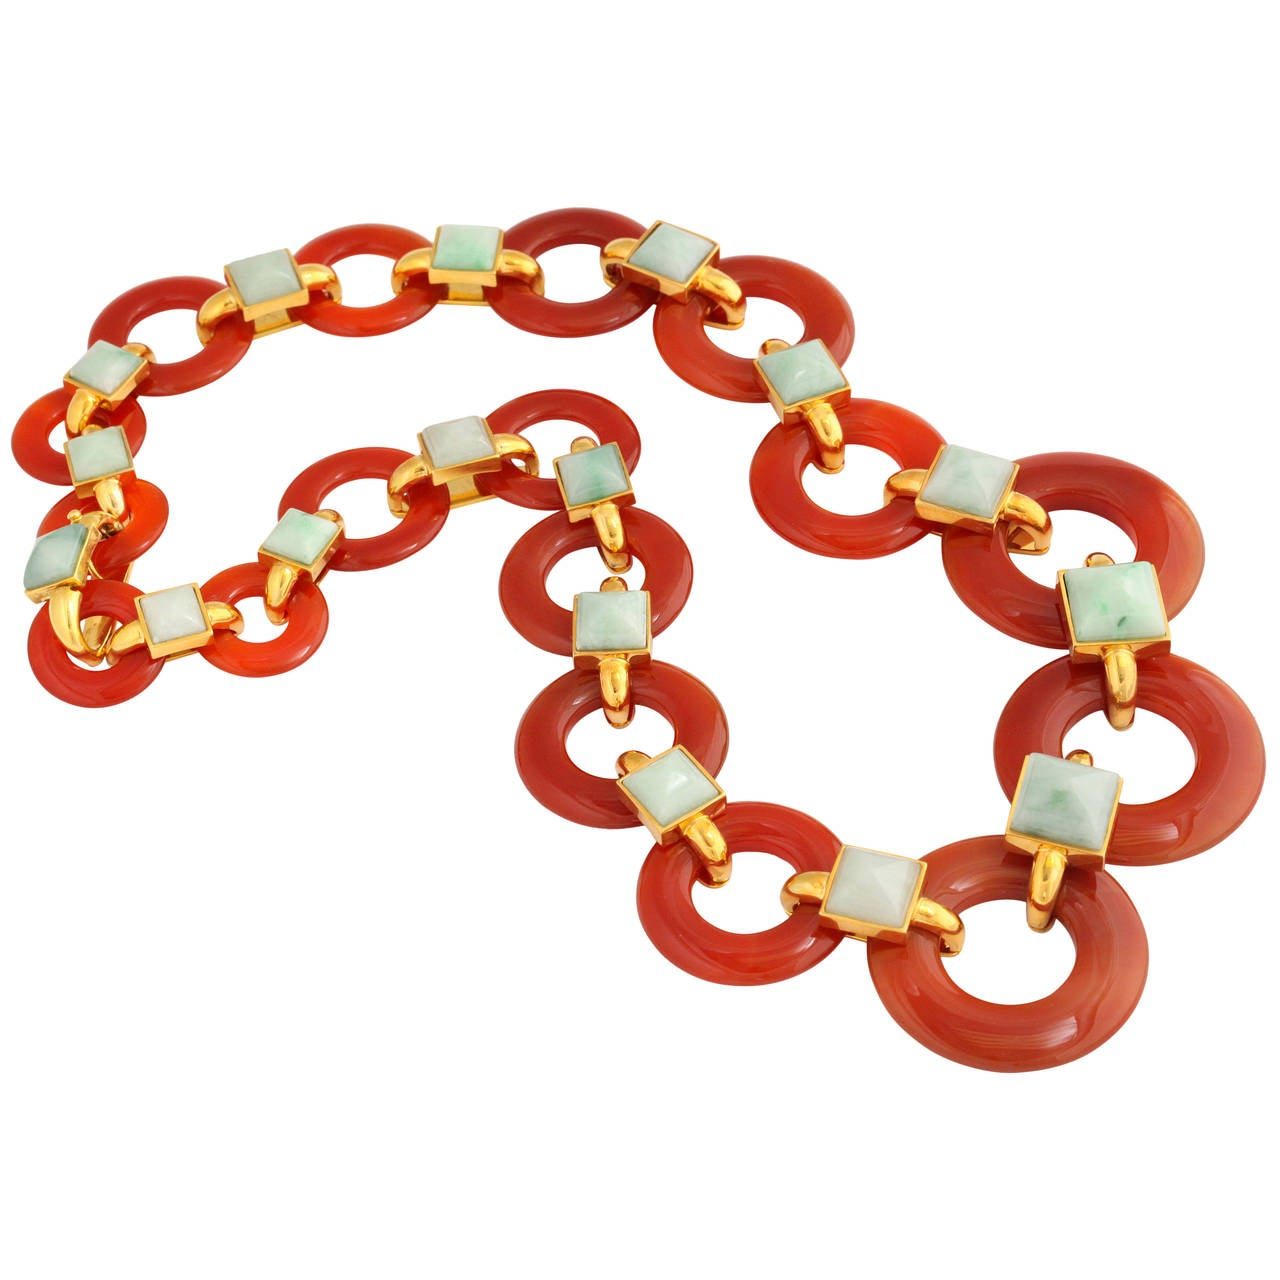 1970s Aldo Cipullo Carved Carnelian Jade Gold Link Necklace 1